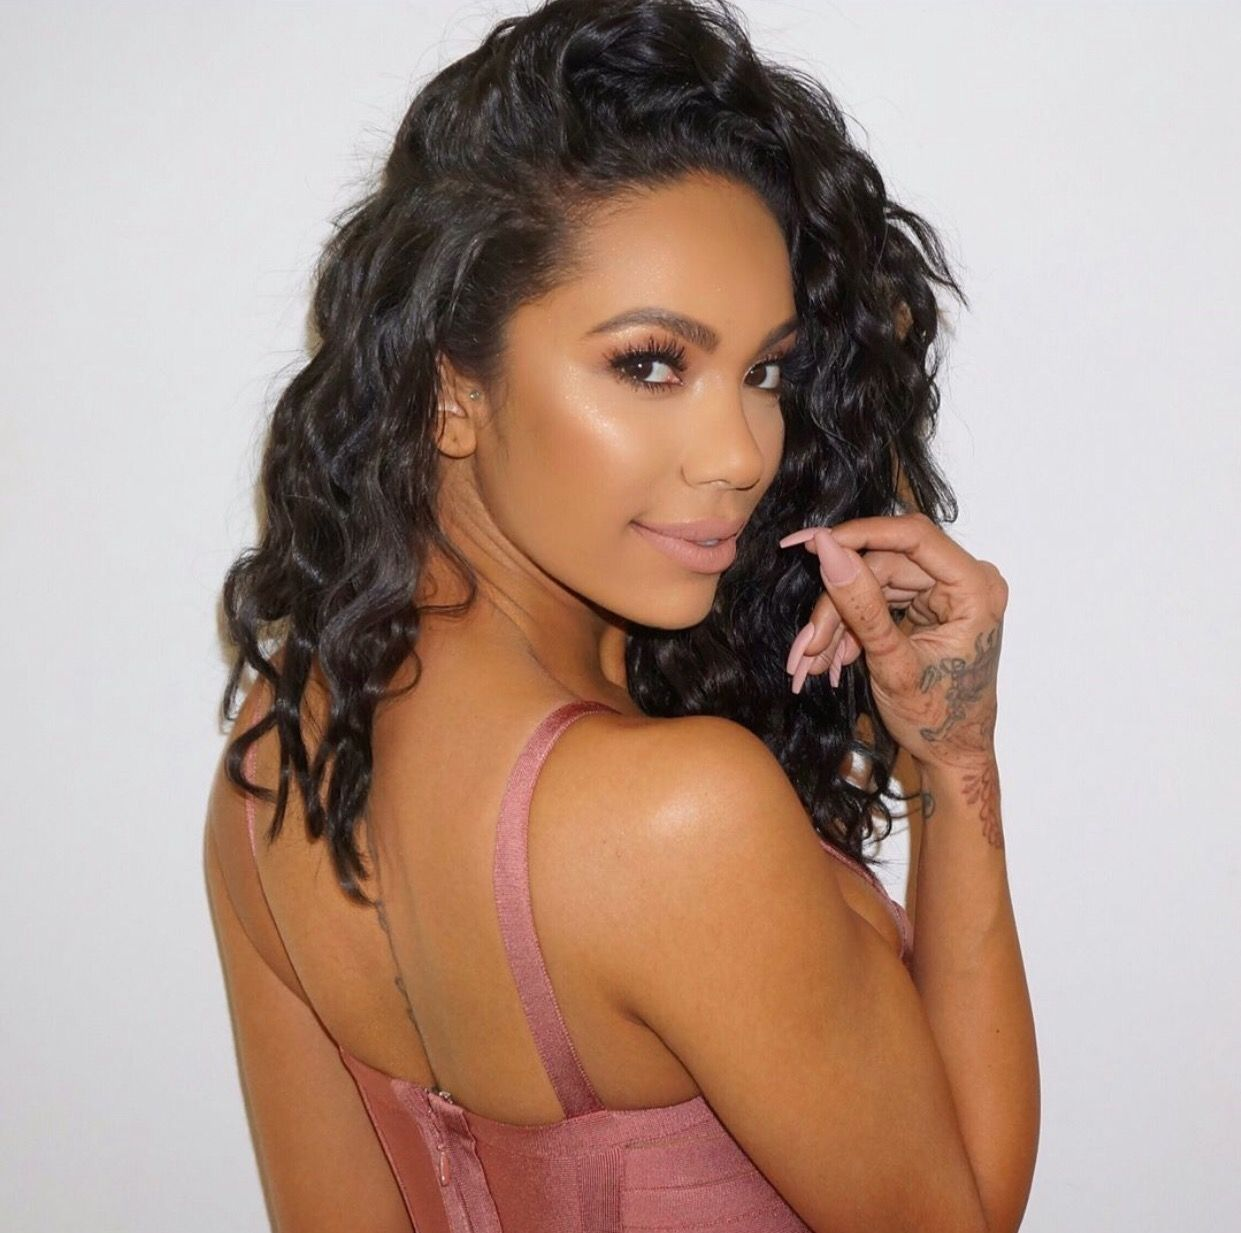 Erica Mena Shows Off Her Bare Tummy And Fans Love That She's Embracing Her Pregnant Look